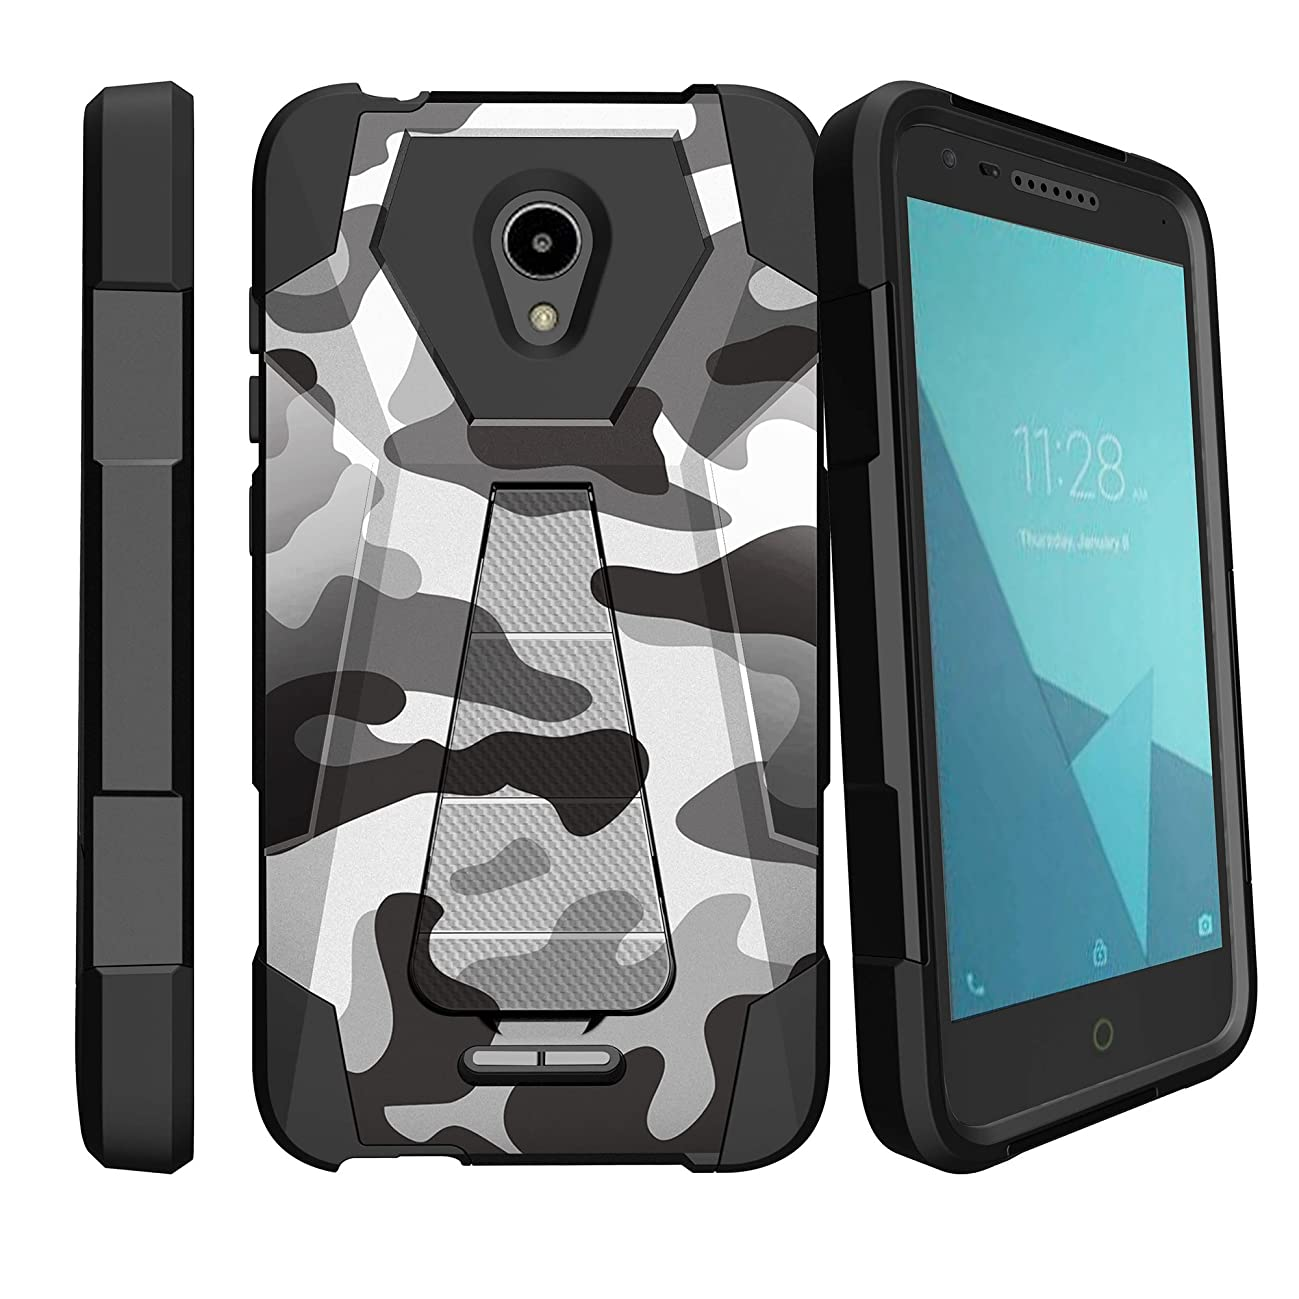 MINITURTLE Case Compatible with Alcatel Raven LTE, Alcatel IdealXcite, Alcatel CameoX Dual Layer Protective Non Slip Shockproof Cover with Push-in Stand by MINITURTLE - Winter Camouflage